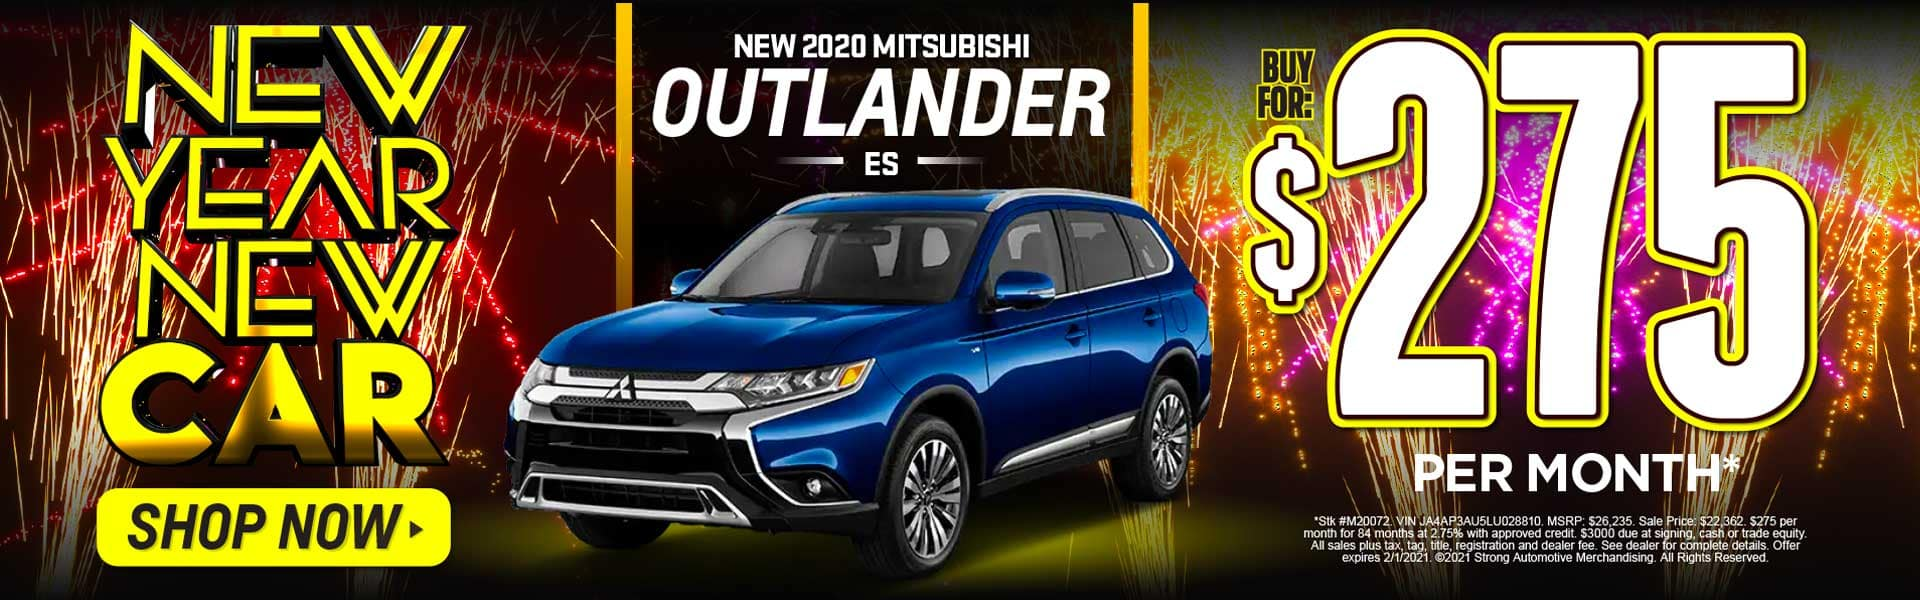 2020 MITSUBISHI OUTLANDER ES $275 A MONTH* ACT NOW